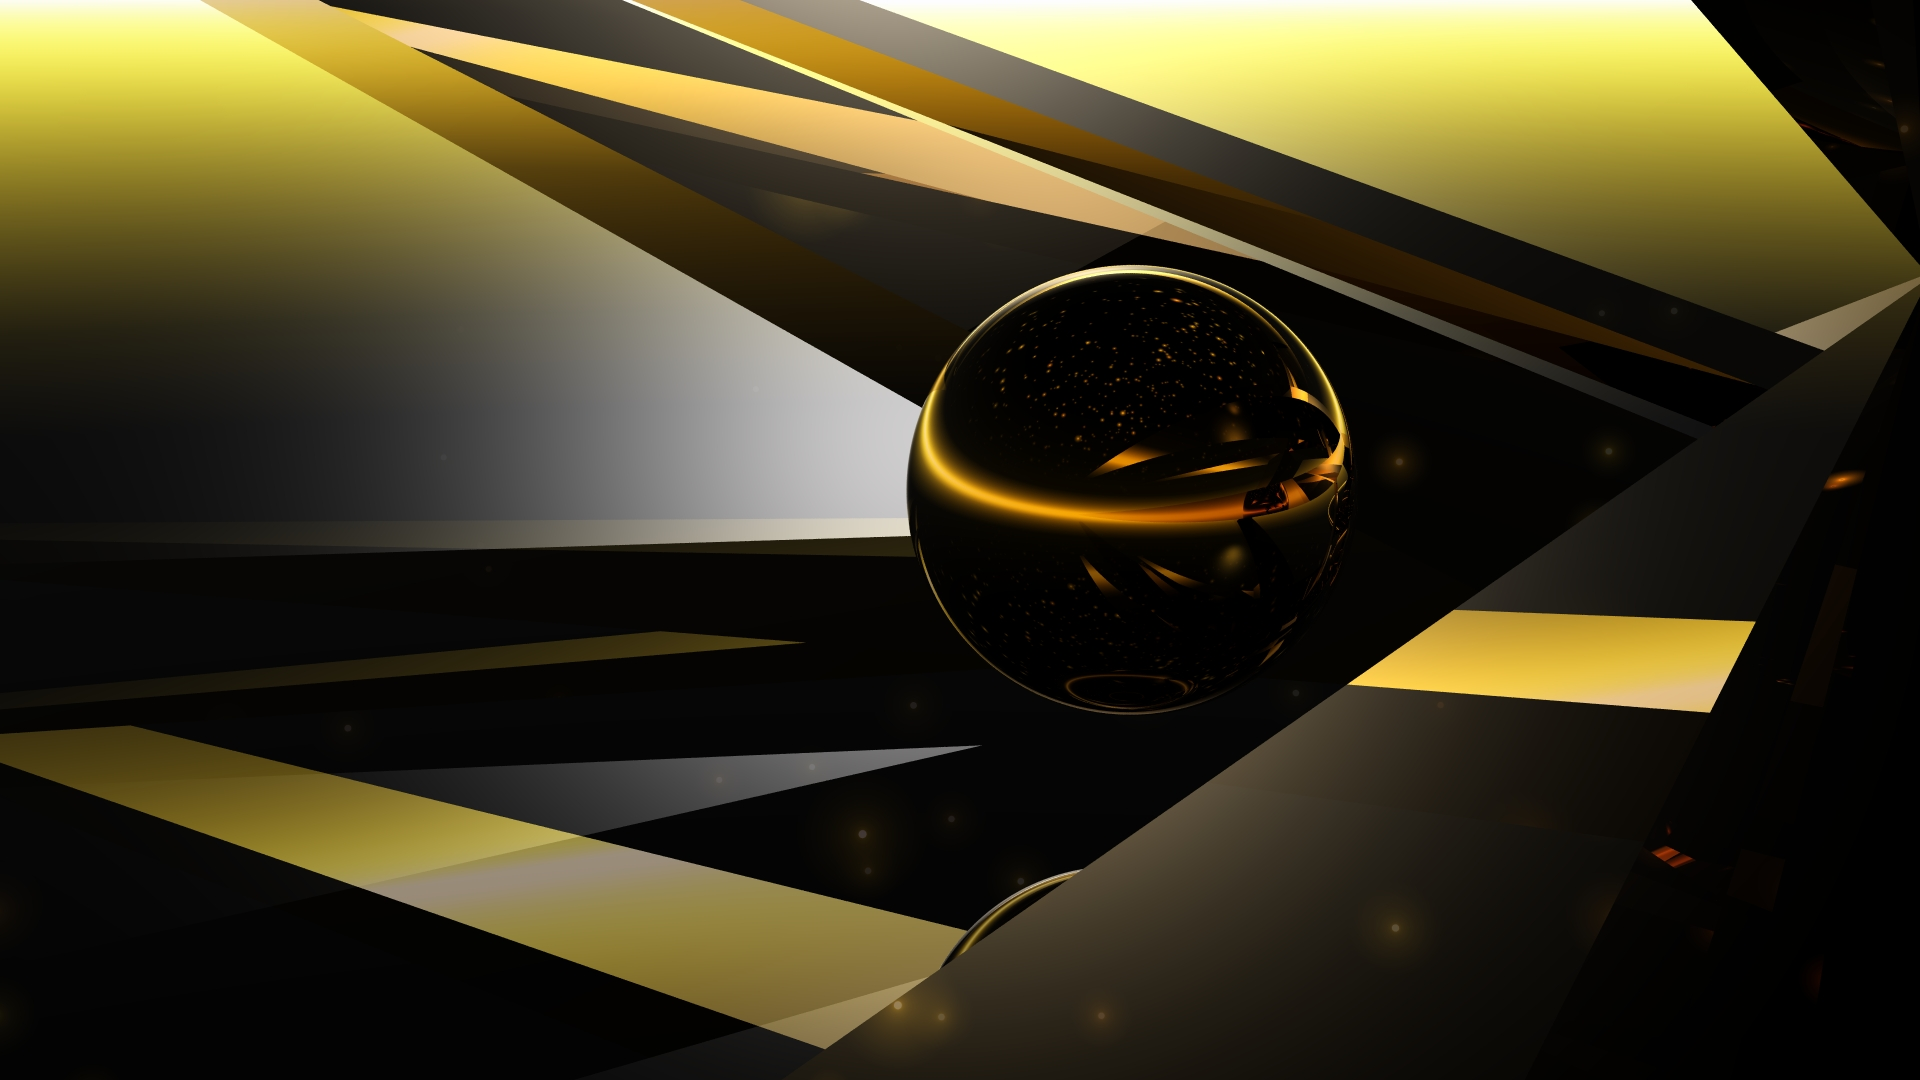 Golden Sphere by Topas2012